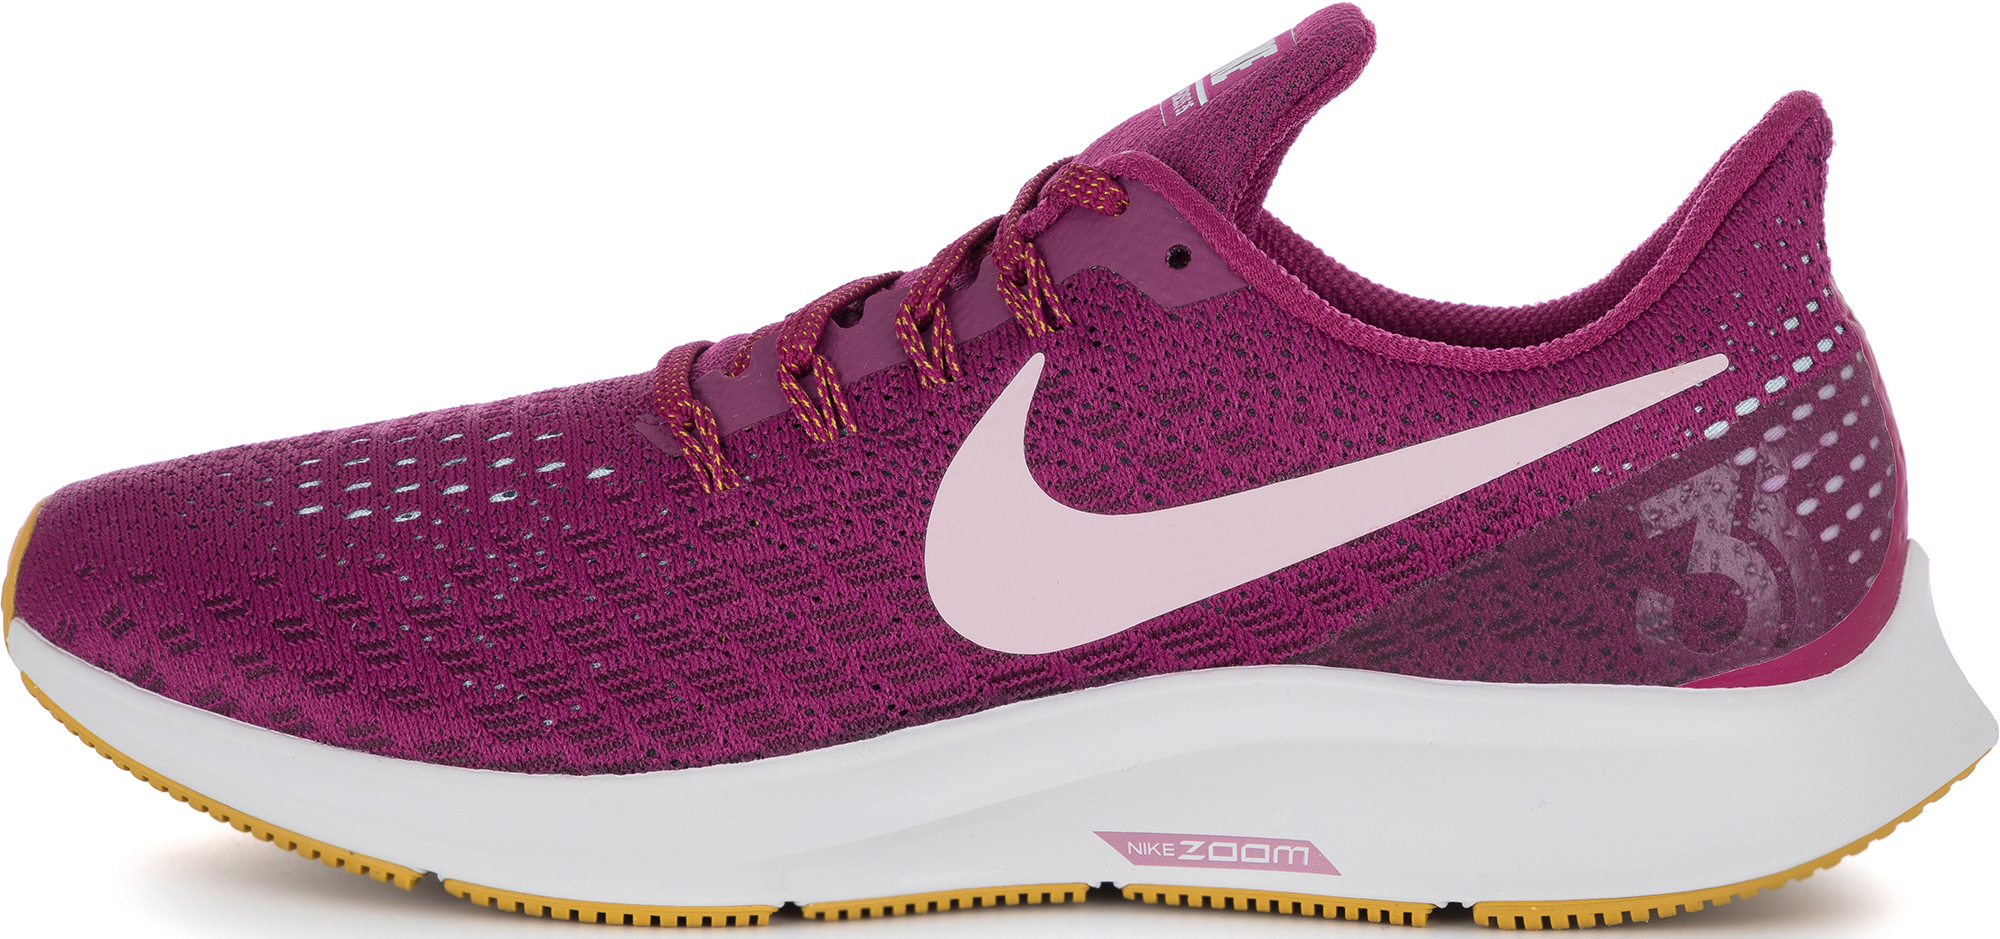 Nike Кроссовки женские Nike Air Zoom Pegasus 35, размер 39